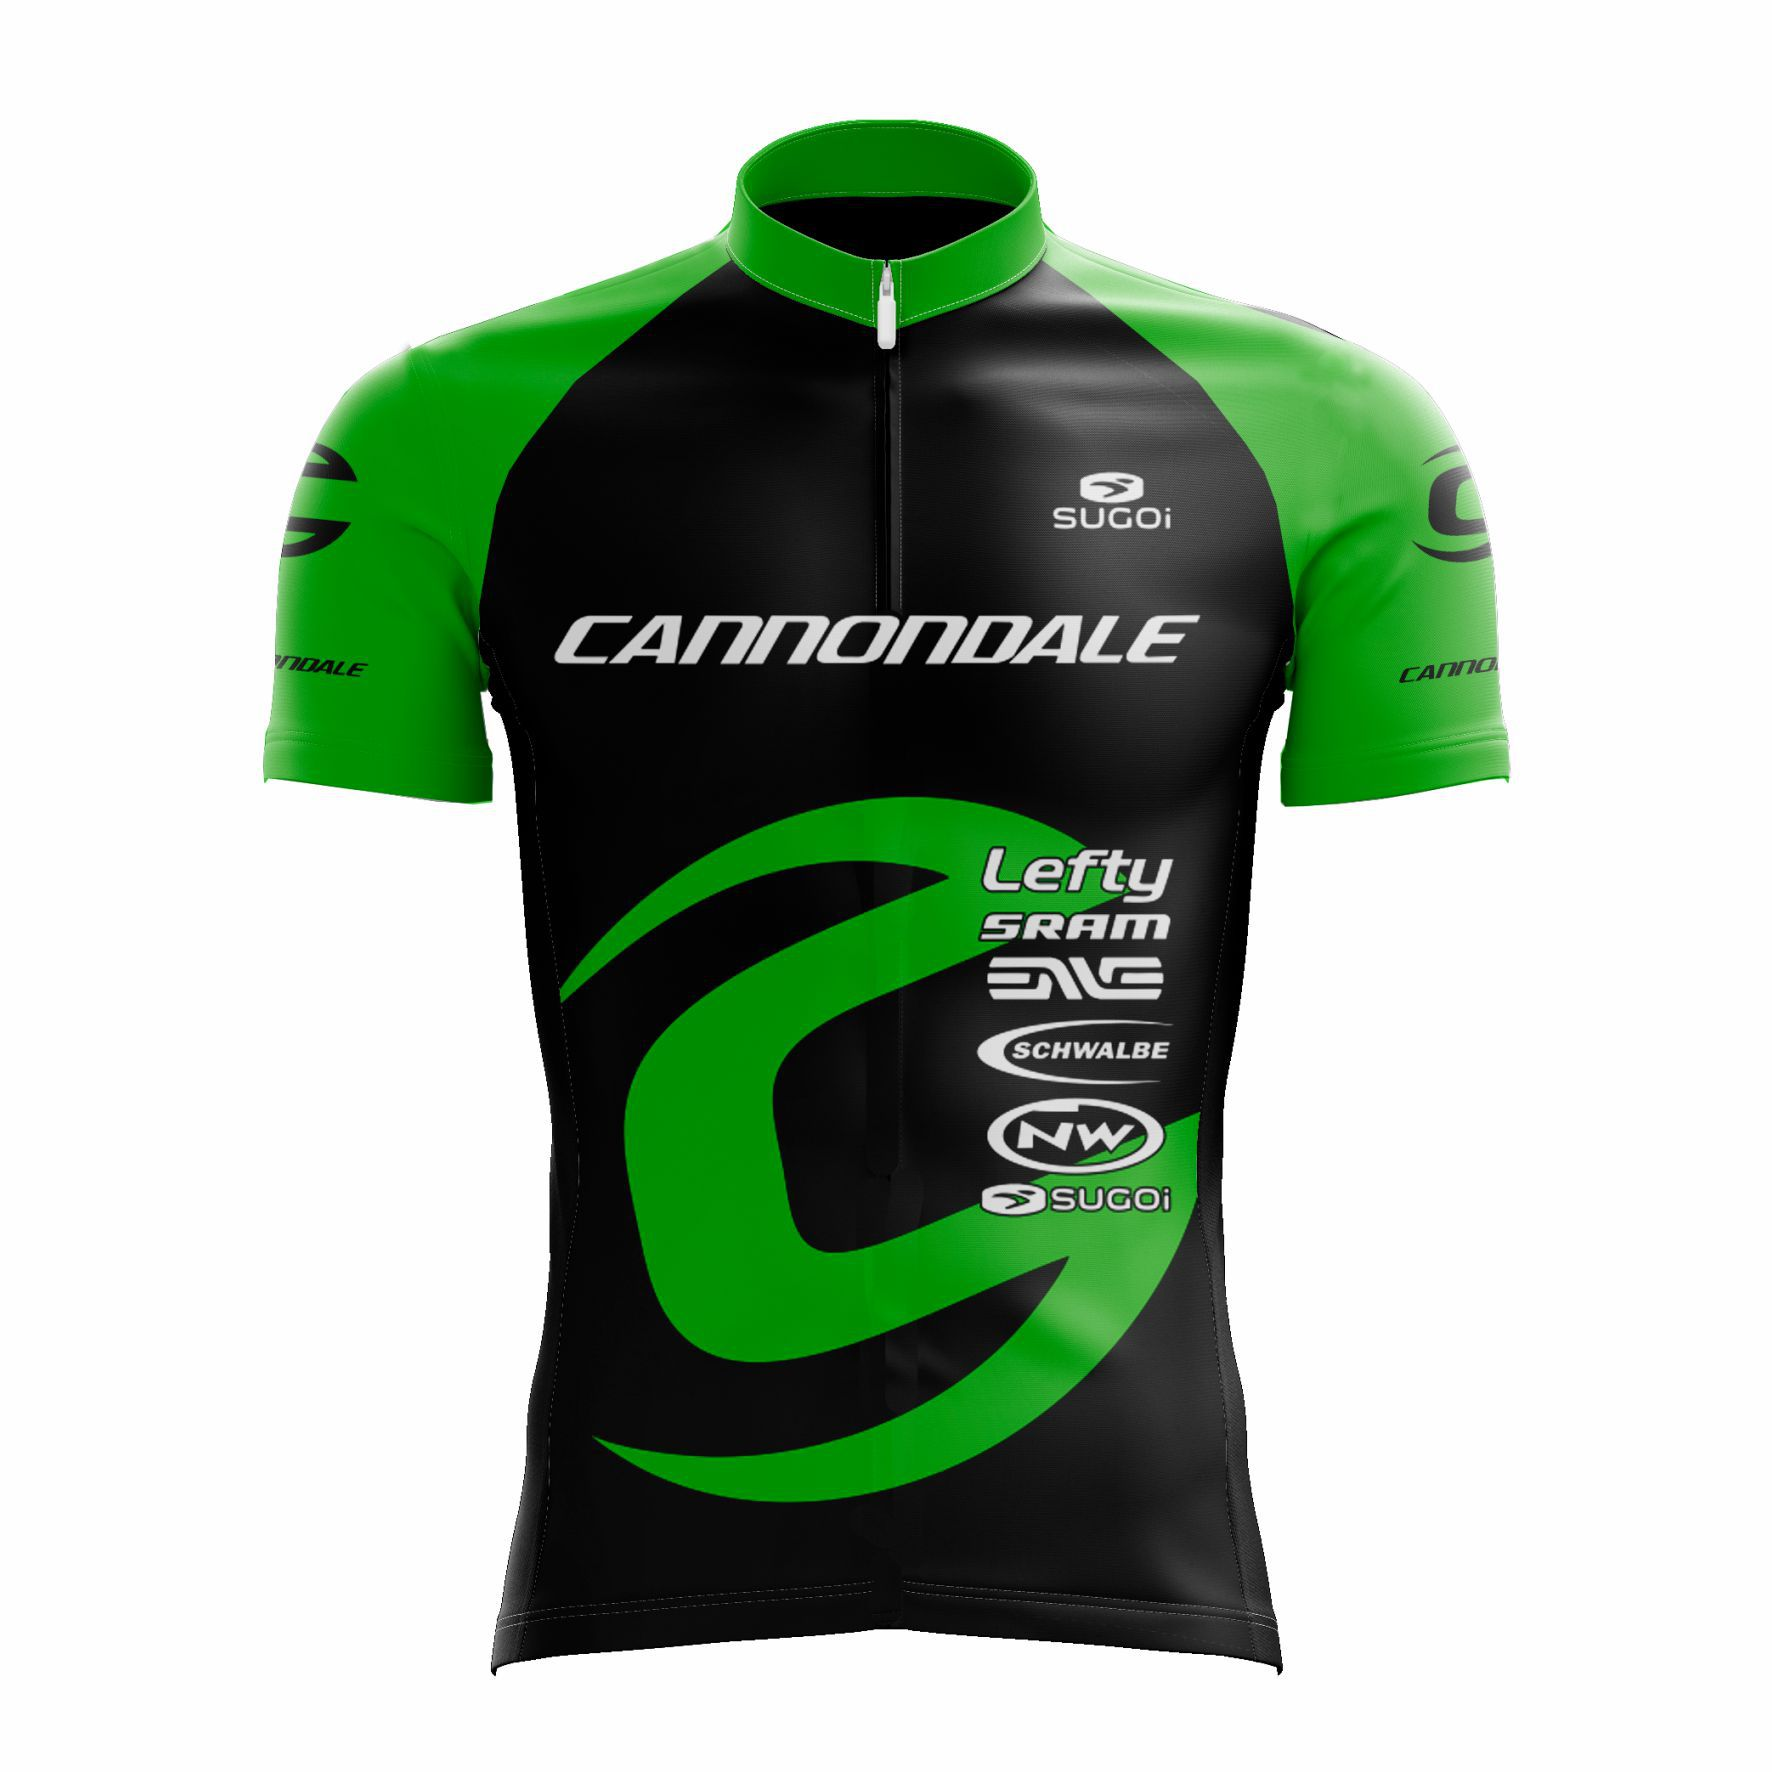 Camisa Ciclismo Cannondale EF Verde